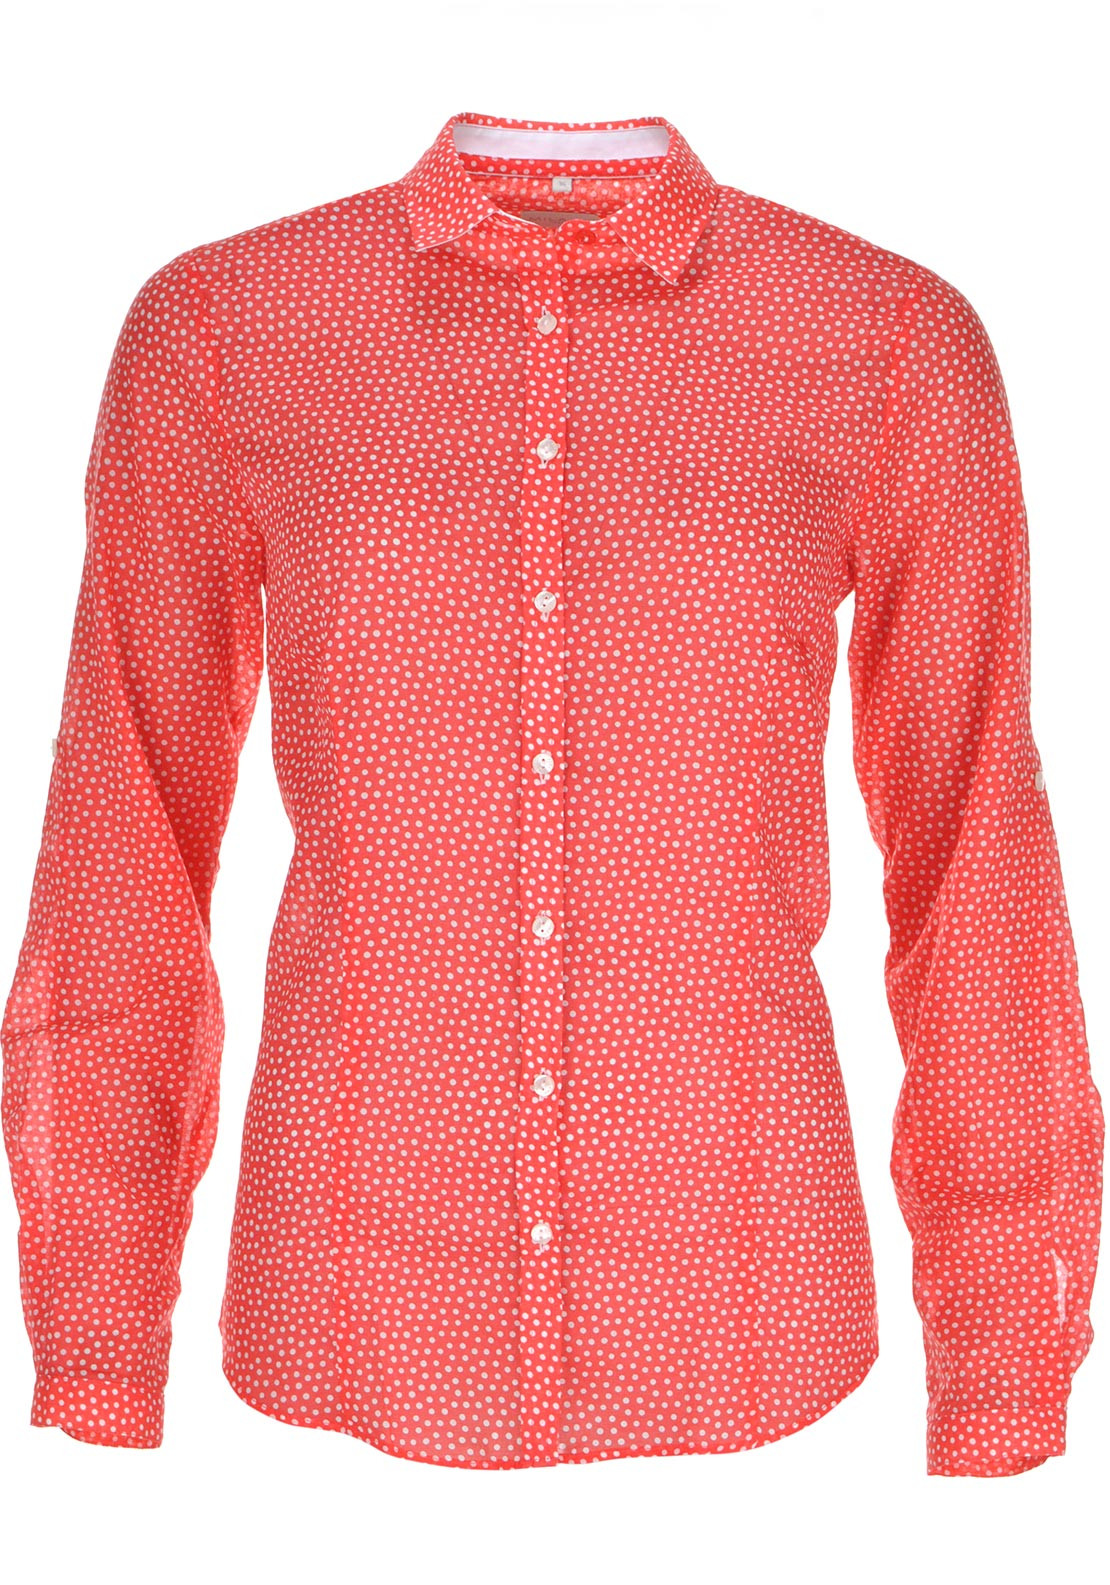 Milano Polka Dot Print Long Sleeve Blouse, Red